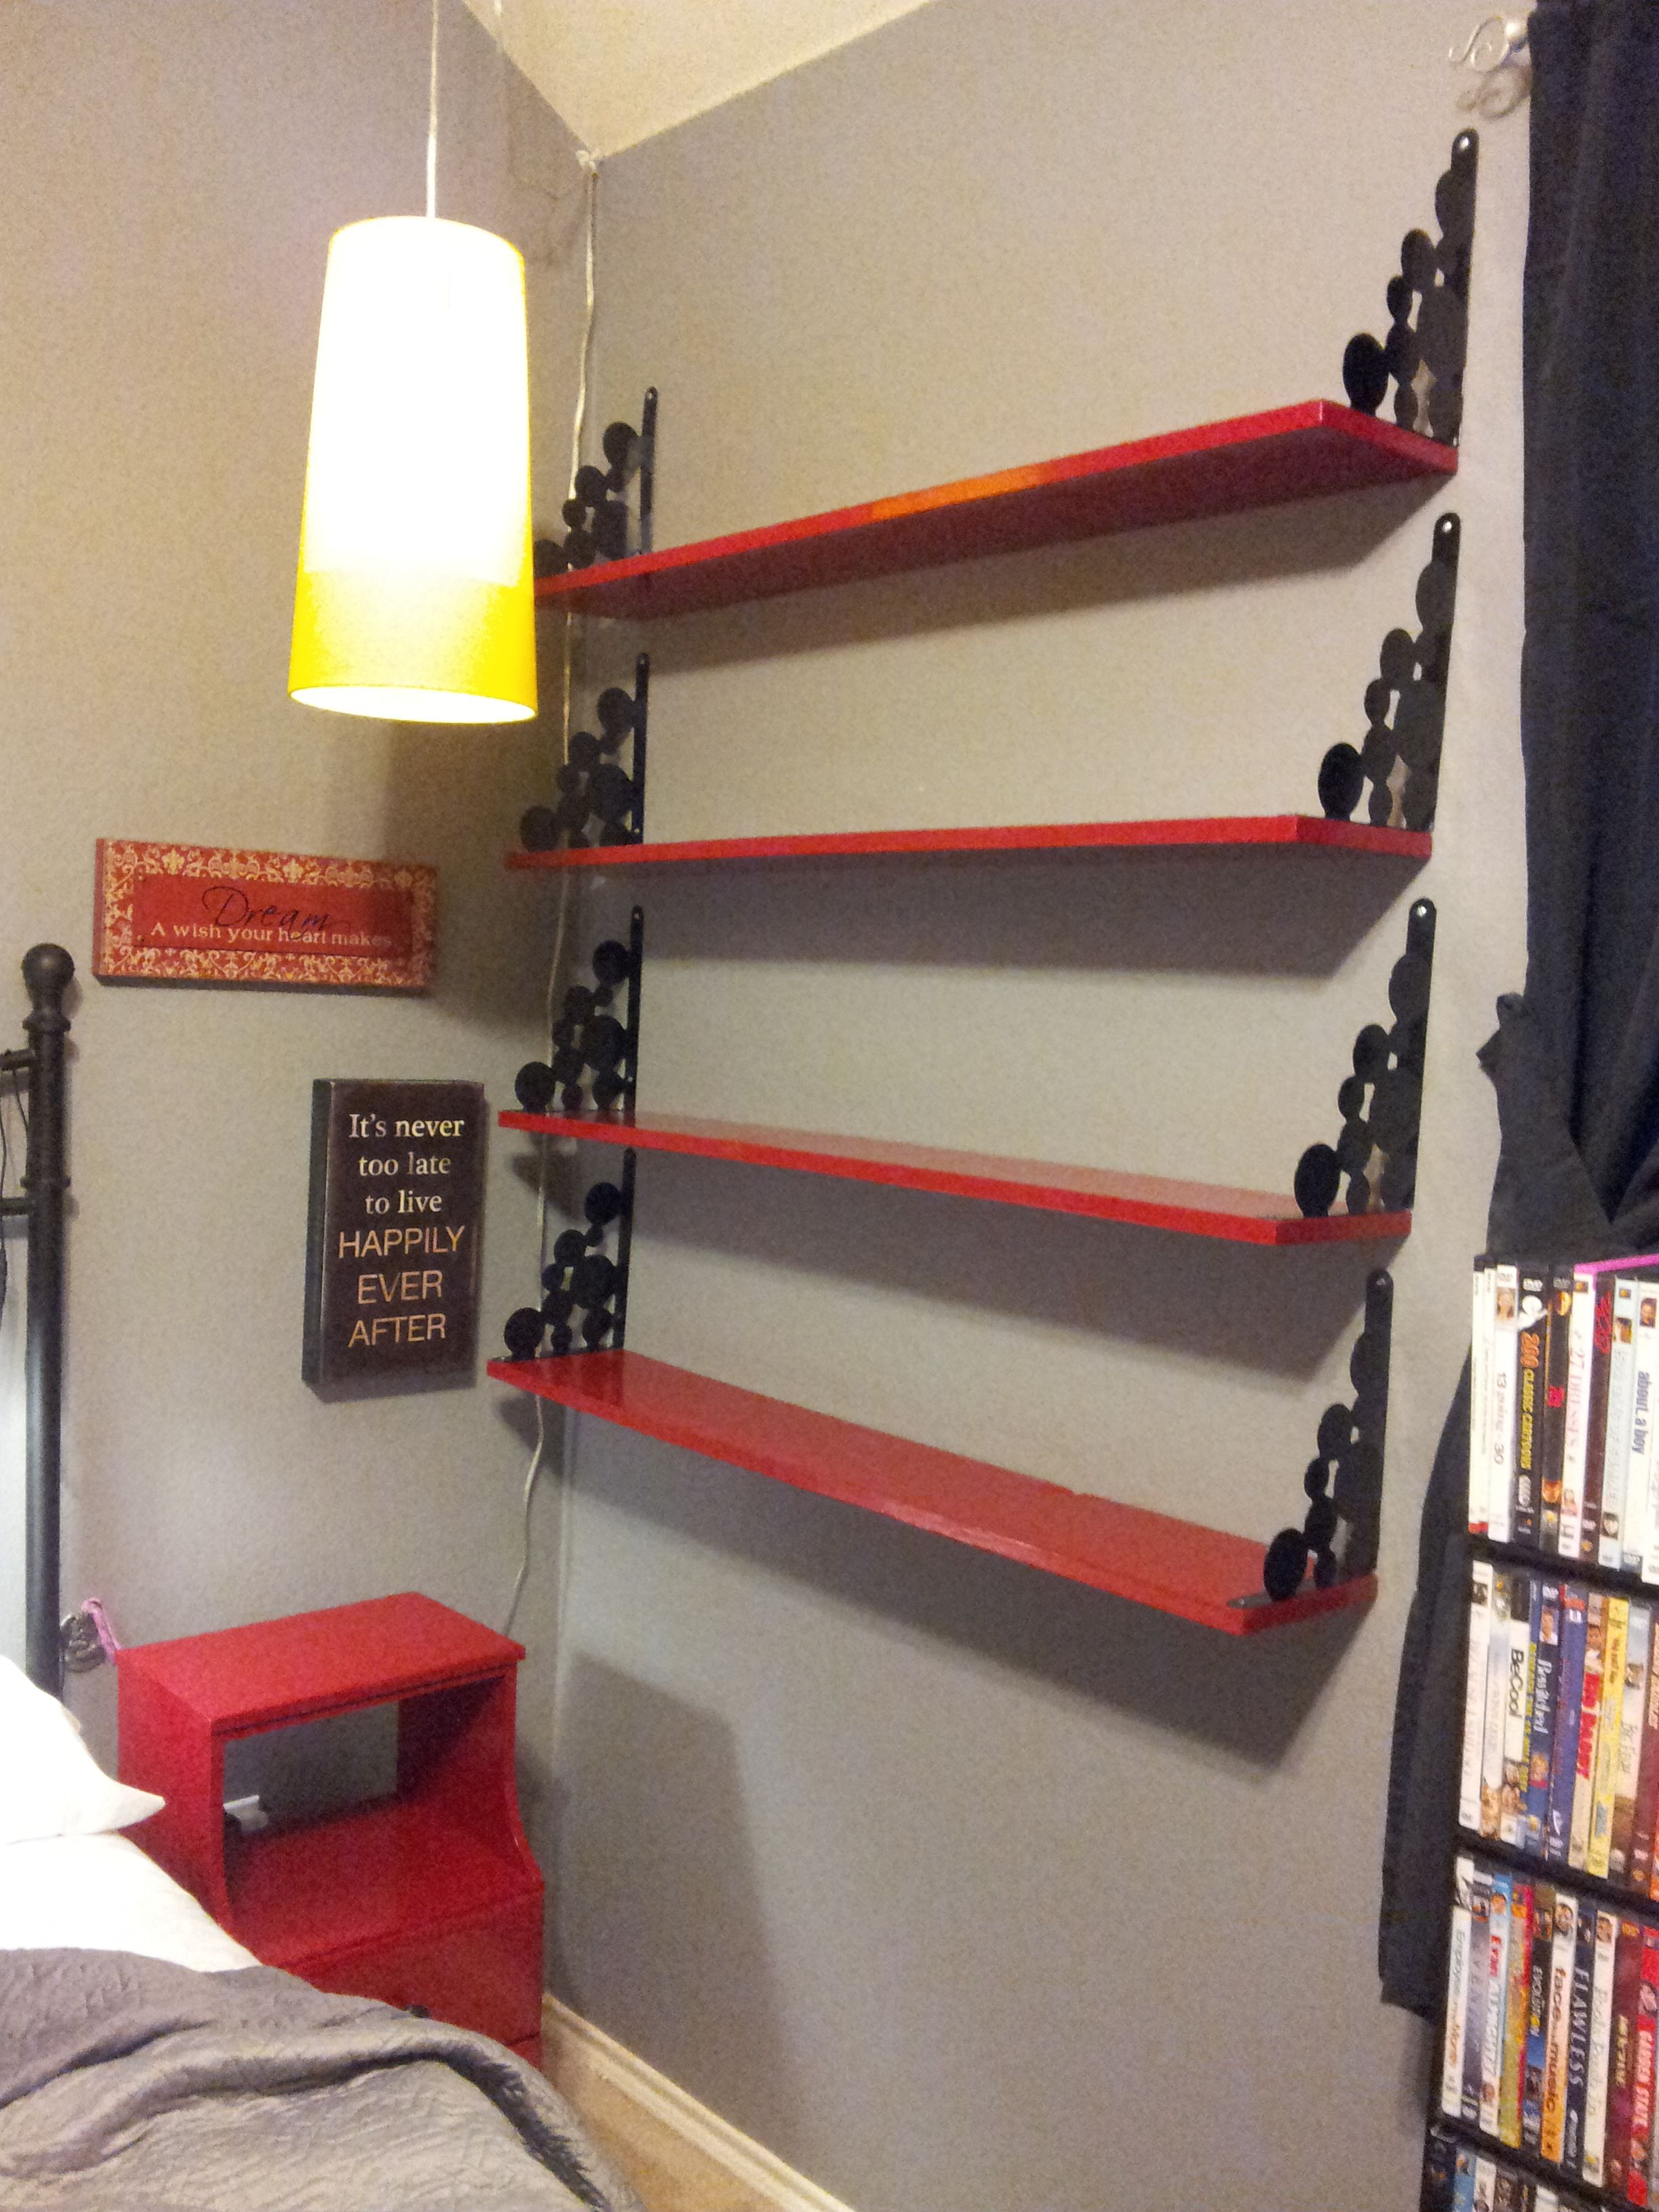 Brackets From Ikea Wood Cut To Length At Home Depot Gel Paint Shelves For My Dvds The Serve As Bookends Hold Up Since I Hung